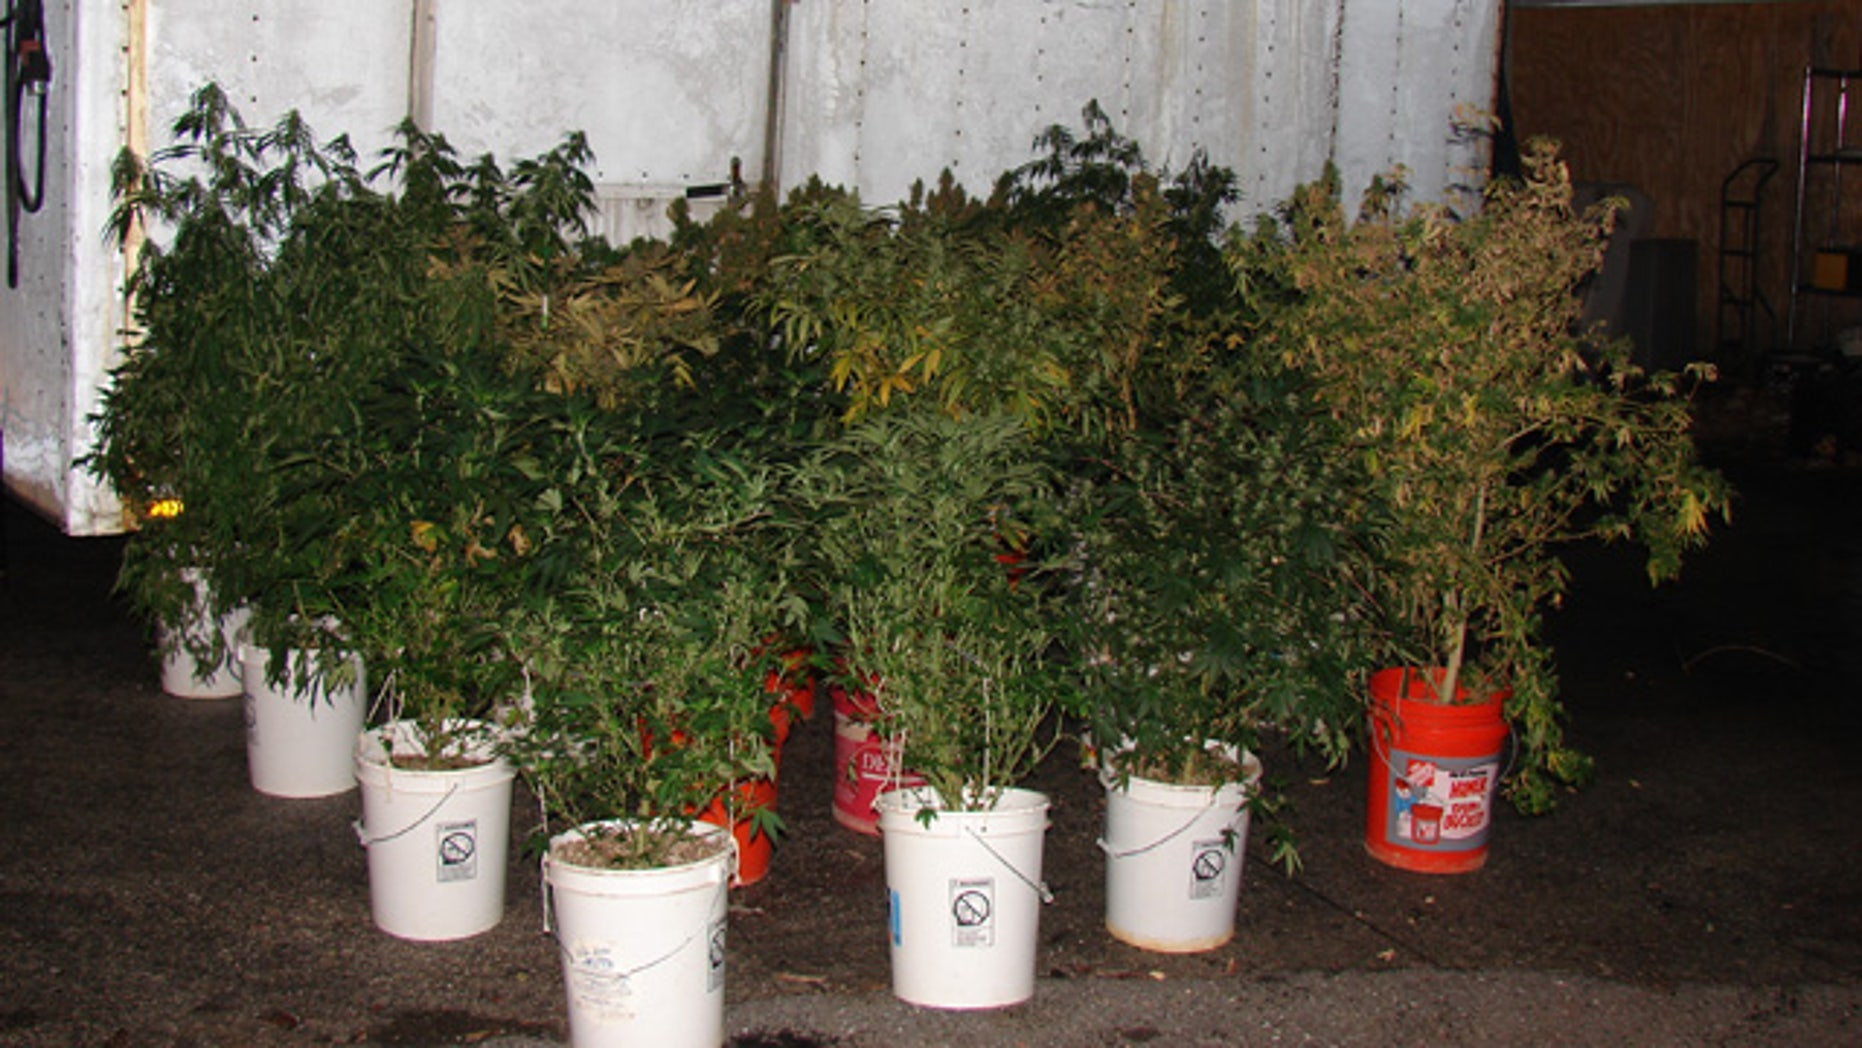 This undated photo released by the Howard County, Md., police, shows marijuana plants that were discovered at the home of 44-year-old Richard Marriott, after a car crashed into Marriott's home in Ellicott City, Md. Marriott and another person were uninjured when a BMW driven by 20-year-old Bryan Bolster crashed into Marriott's house and burst into flames on Dec. 10. Bolster died in the crash. Howard County police say fire investigators were inspecting Marriott's home when they found the drugs. (AP/Howard County Police)